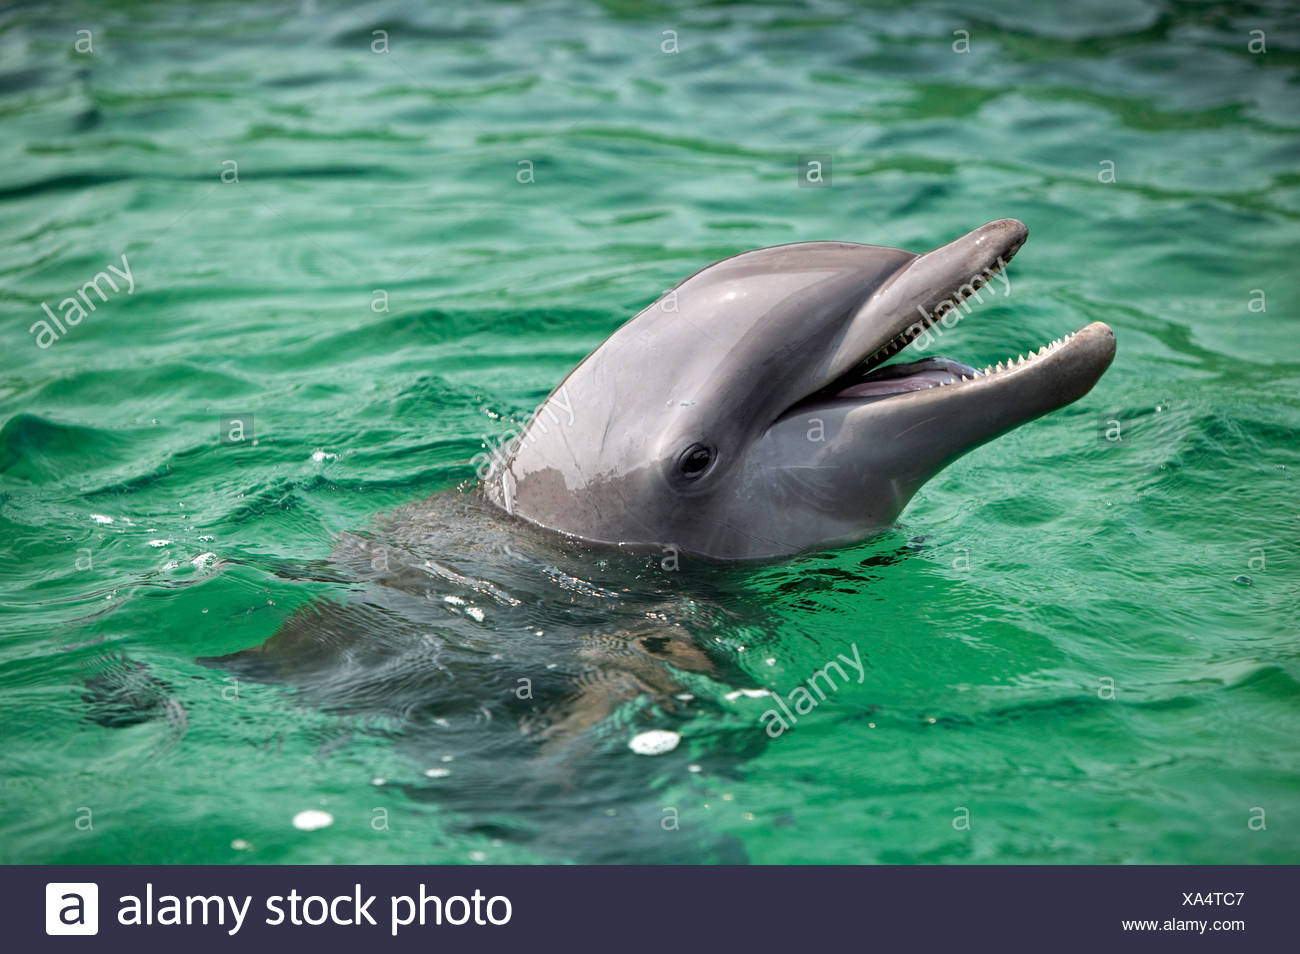 Dolphin Stock Photos & Dolphin Stock Images - Alamy